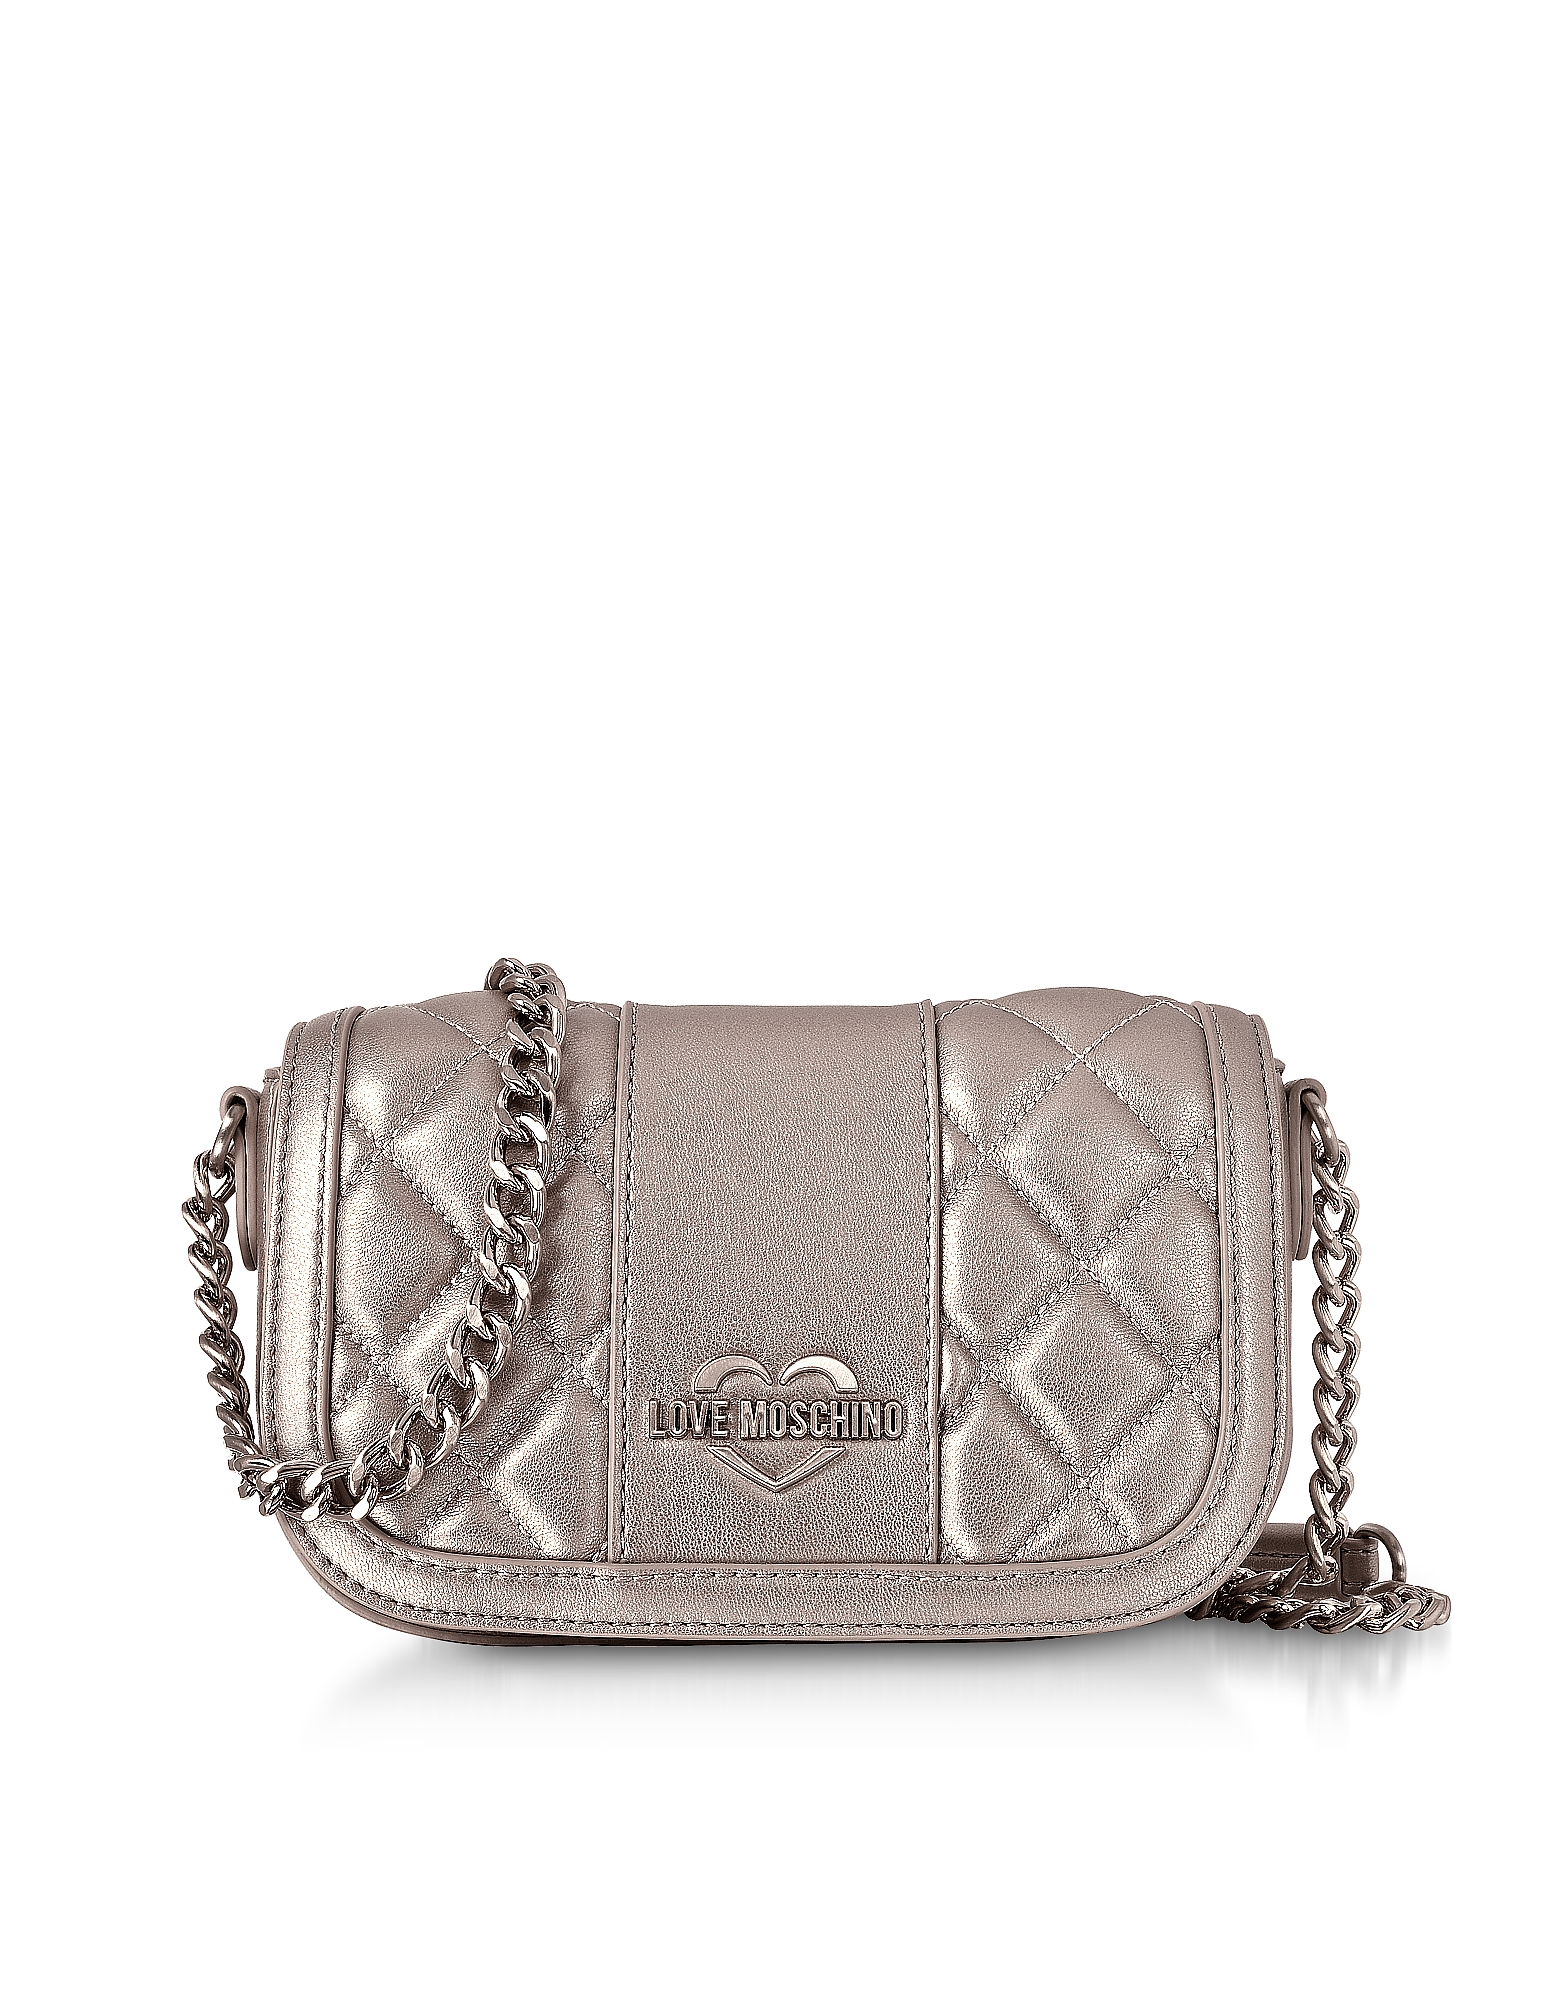 Love Moschino Handbags, Metallic Quilted Eco Leather Mini Shoulder Bag